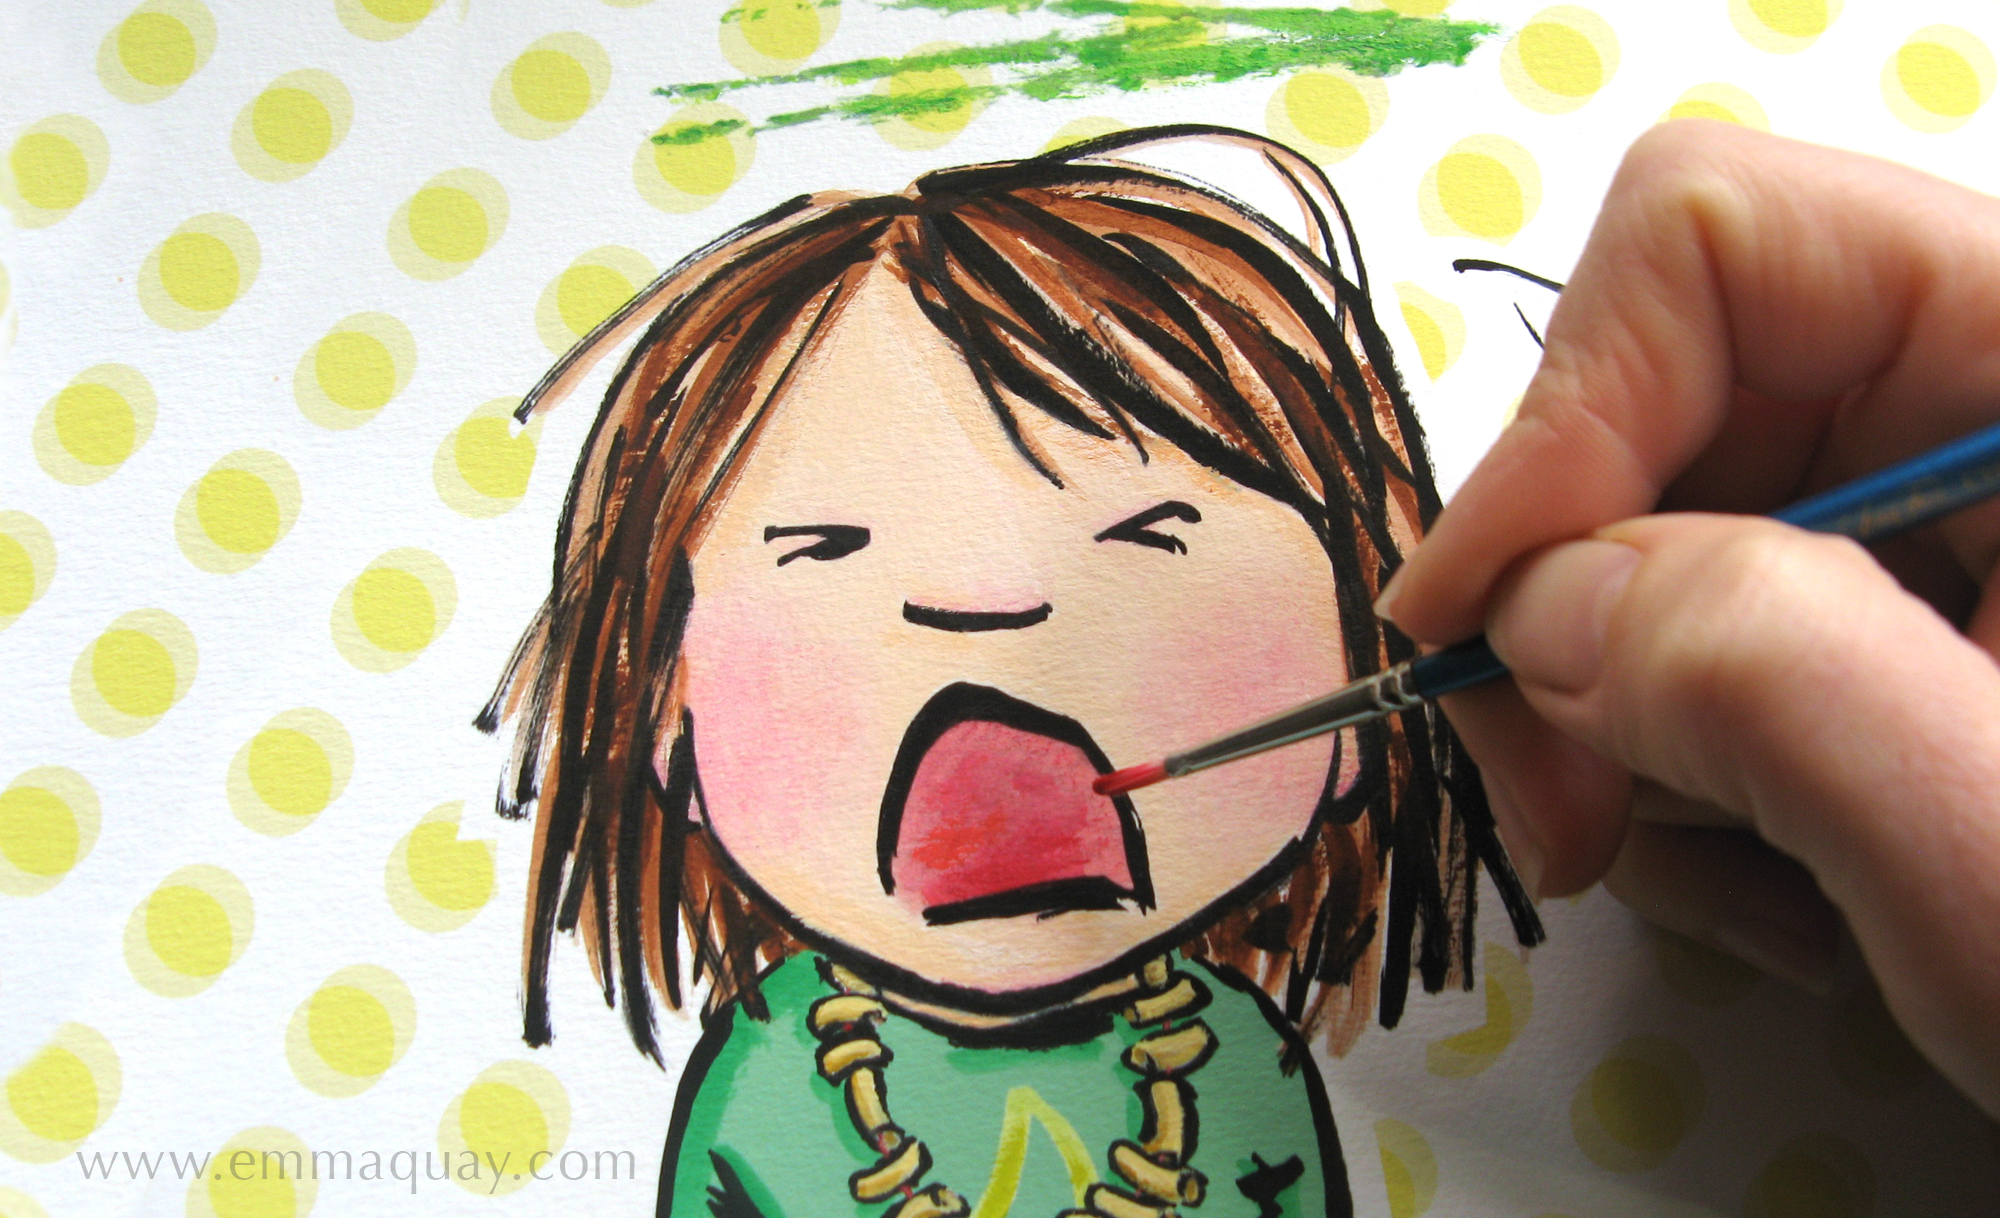 The final stage of the illustrative process was adding the last of the colour with acrylic paints (I didn't leave all of the painting to my daughters!). This is Violet's sisters' meltdown moment, and she is expressing herself in green.